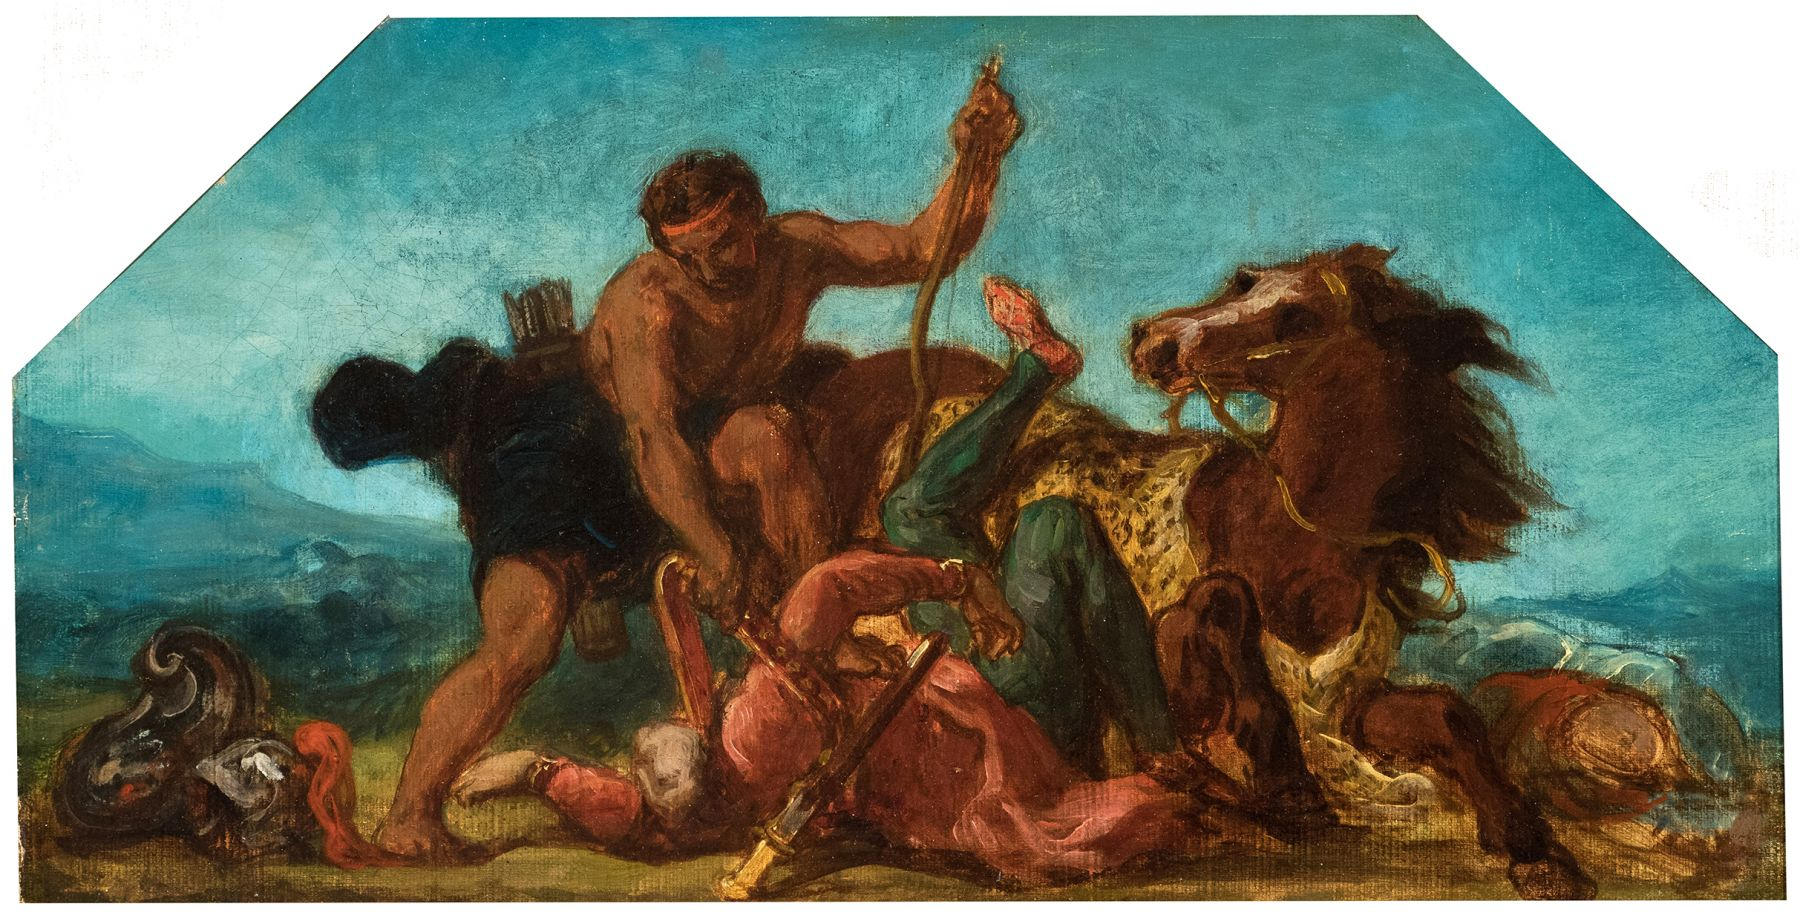 Eugene delacroix Hercules and Hippolyte, Study for a Lunette of The Salon de la Paix    Oil on canvas 9 5/8 x 18 5/8 inches